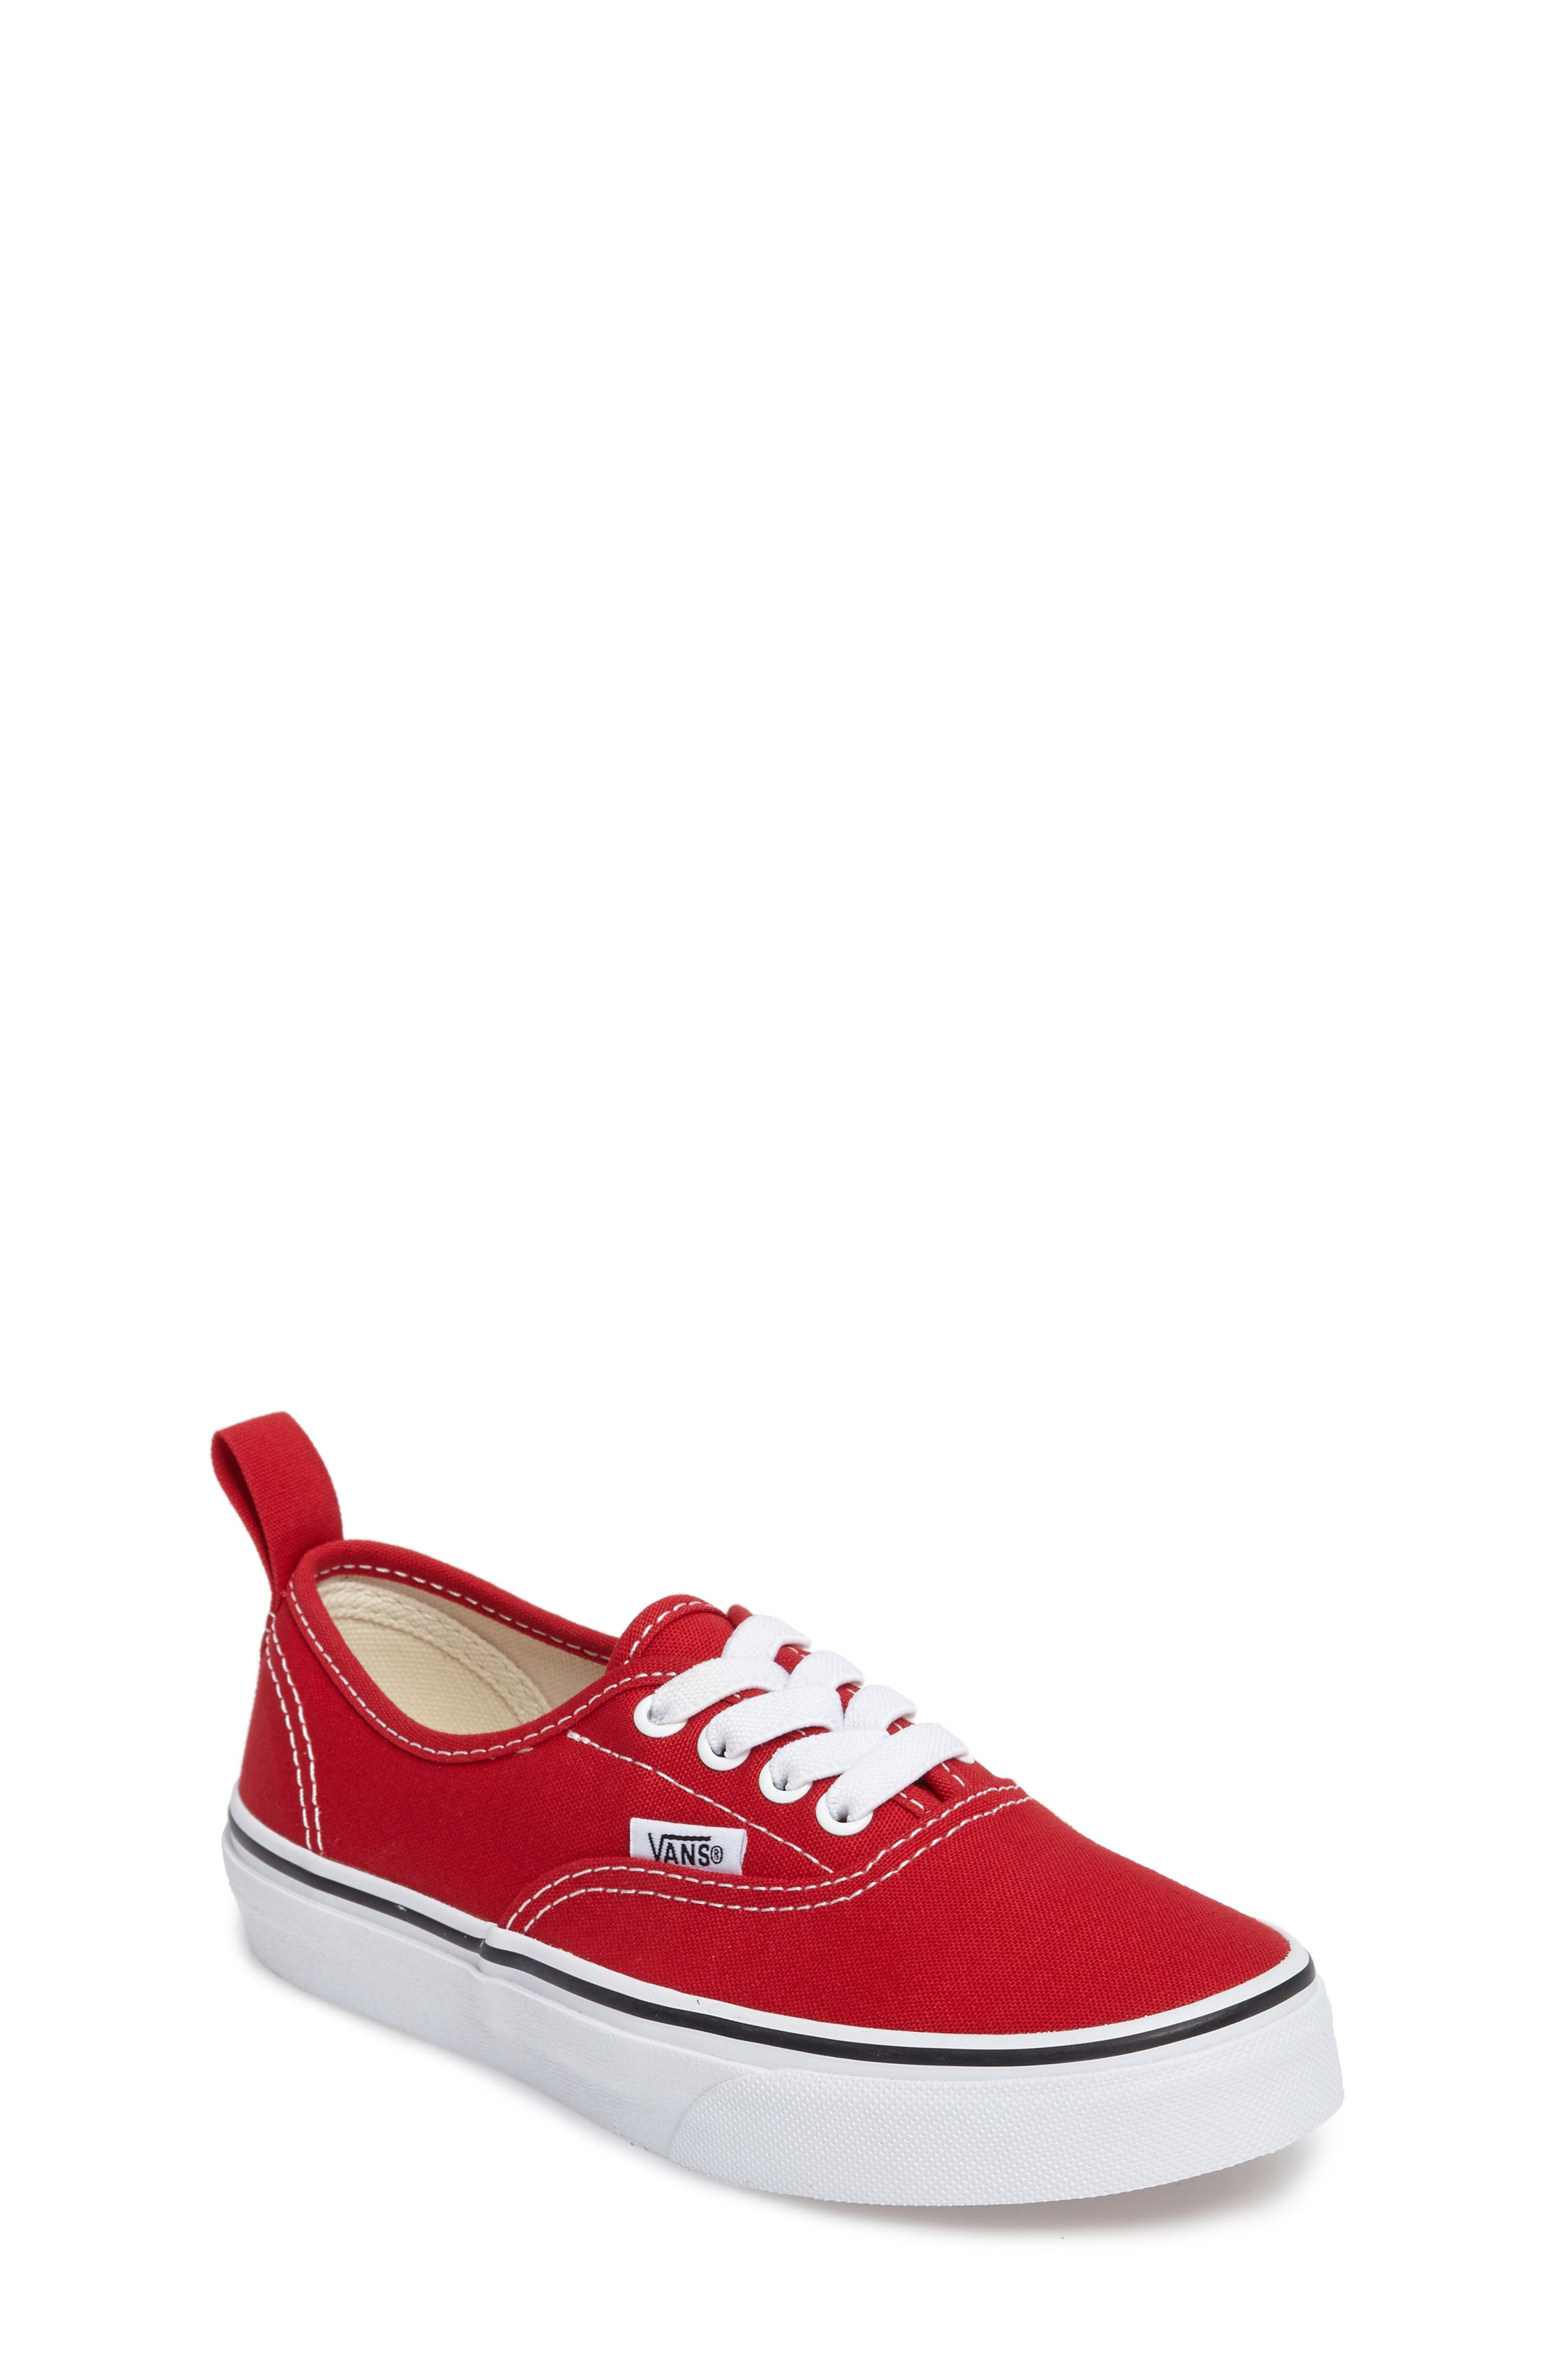 VANS Authentic Sneaker, Main, color, RACING RED/ TRUE WHITE